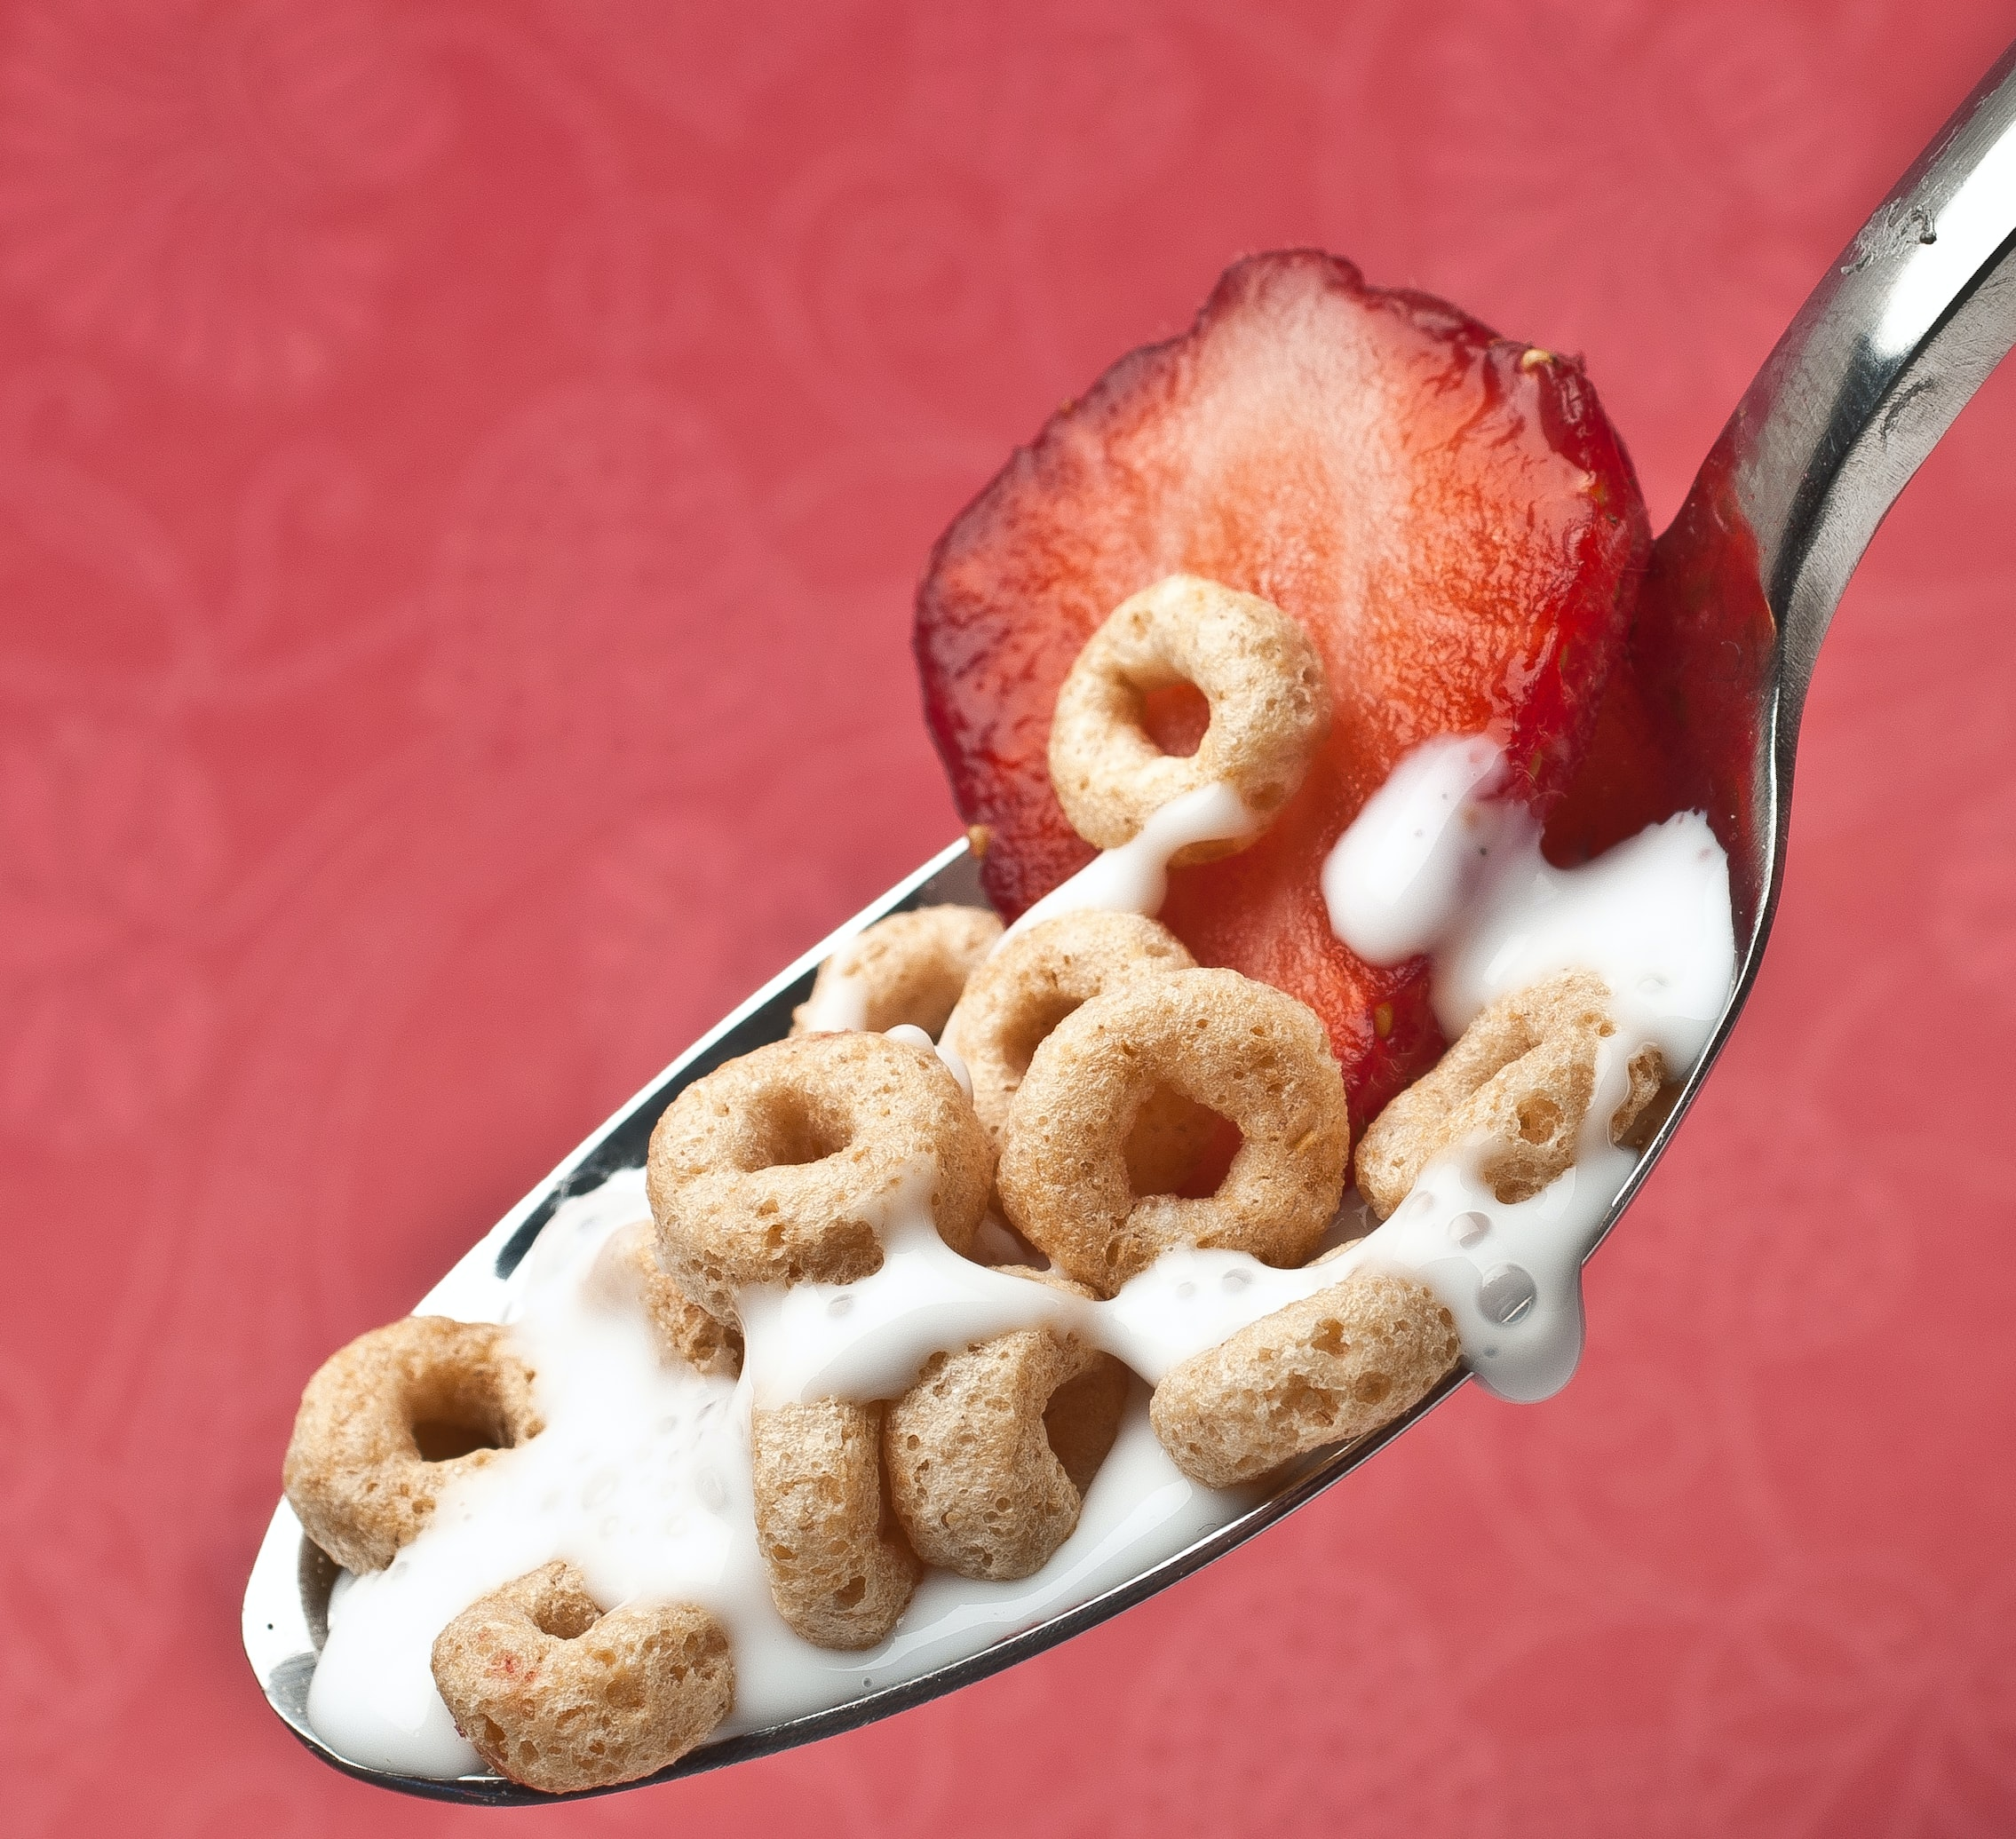 cereal with strawberry on a metal spoon